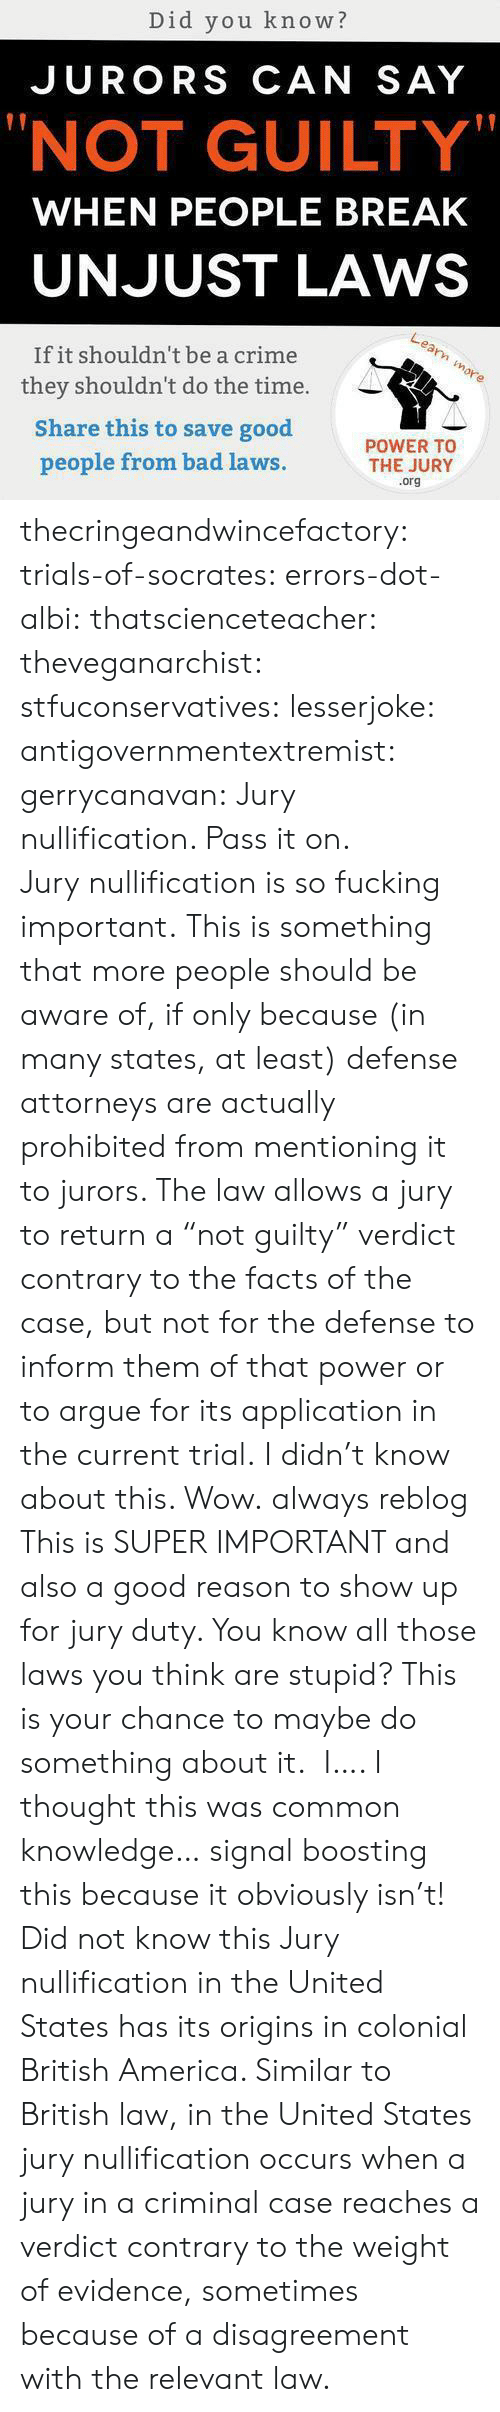 """America, Arguing, and Bad: Did you know?  JURORS CAN SAY  """"NOT GUILTY""""  WHEN PEOPLE BREAK  UNJUST LAWS  If it shouldn't be a crime  they shouldn't do the time.  Share this to save good  people from bad laws  POWER TO  THE JURY  .org thecringeandwincefactory:  trials-of-socrates:   errors-dot-albi:  thatscienceteacher:  theveganarchist:  stfuconservatives:  lesserjoke:  antigovernmentextremist:  gerrycanavan:  Jury nullification. Pass it on.  Jurynullificationis so fucking important.  This is something that more people should be aware of, if only because (in many states, at least) defense attorneys are actually prohibited from mentioning it to jurors. The law allows a jury to return a """"not guilty"""" verdict contrary to the facts of the case, but not for the defense to inform them of that power or to argue for its application in the current trial.  I didn't know about this. Wow.  always reblog  This is SUPER IMPORTANT and also a good reason to show up for jury duty. You know all those laws you think are stupid? This is your chance to maybe do something about it.  I…. I thought this was common knowledge… signal boosting this because it obviously isn't!  Did not know this   Jury nullification in the United States has its origins in colonial British America. Similar to British law, in the United States jury nullification occurs when a jury in a criminal case reaches a verdict contrary to the weight of evidence, sometimes because of a disagreement with the relevant law."""